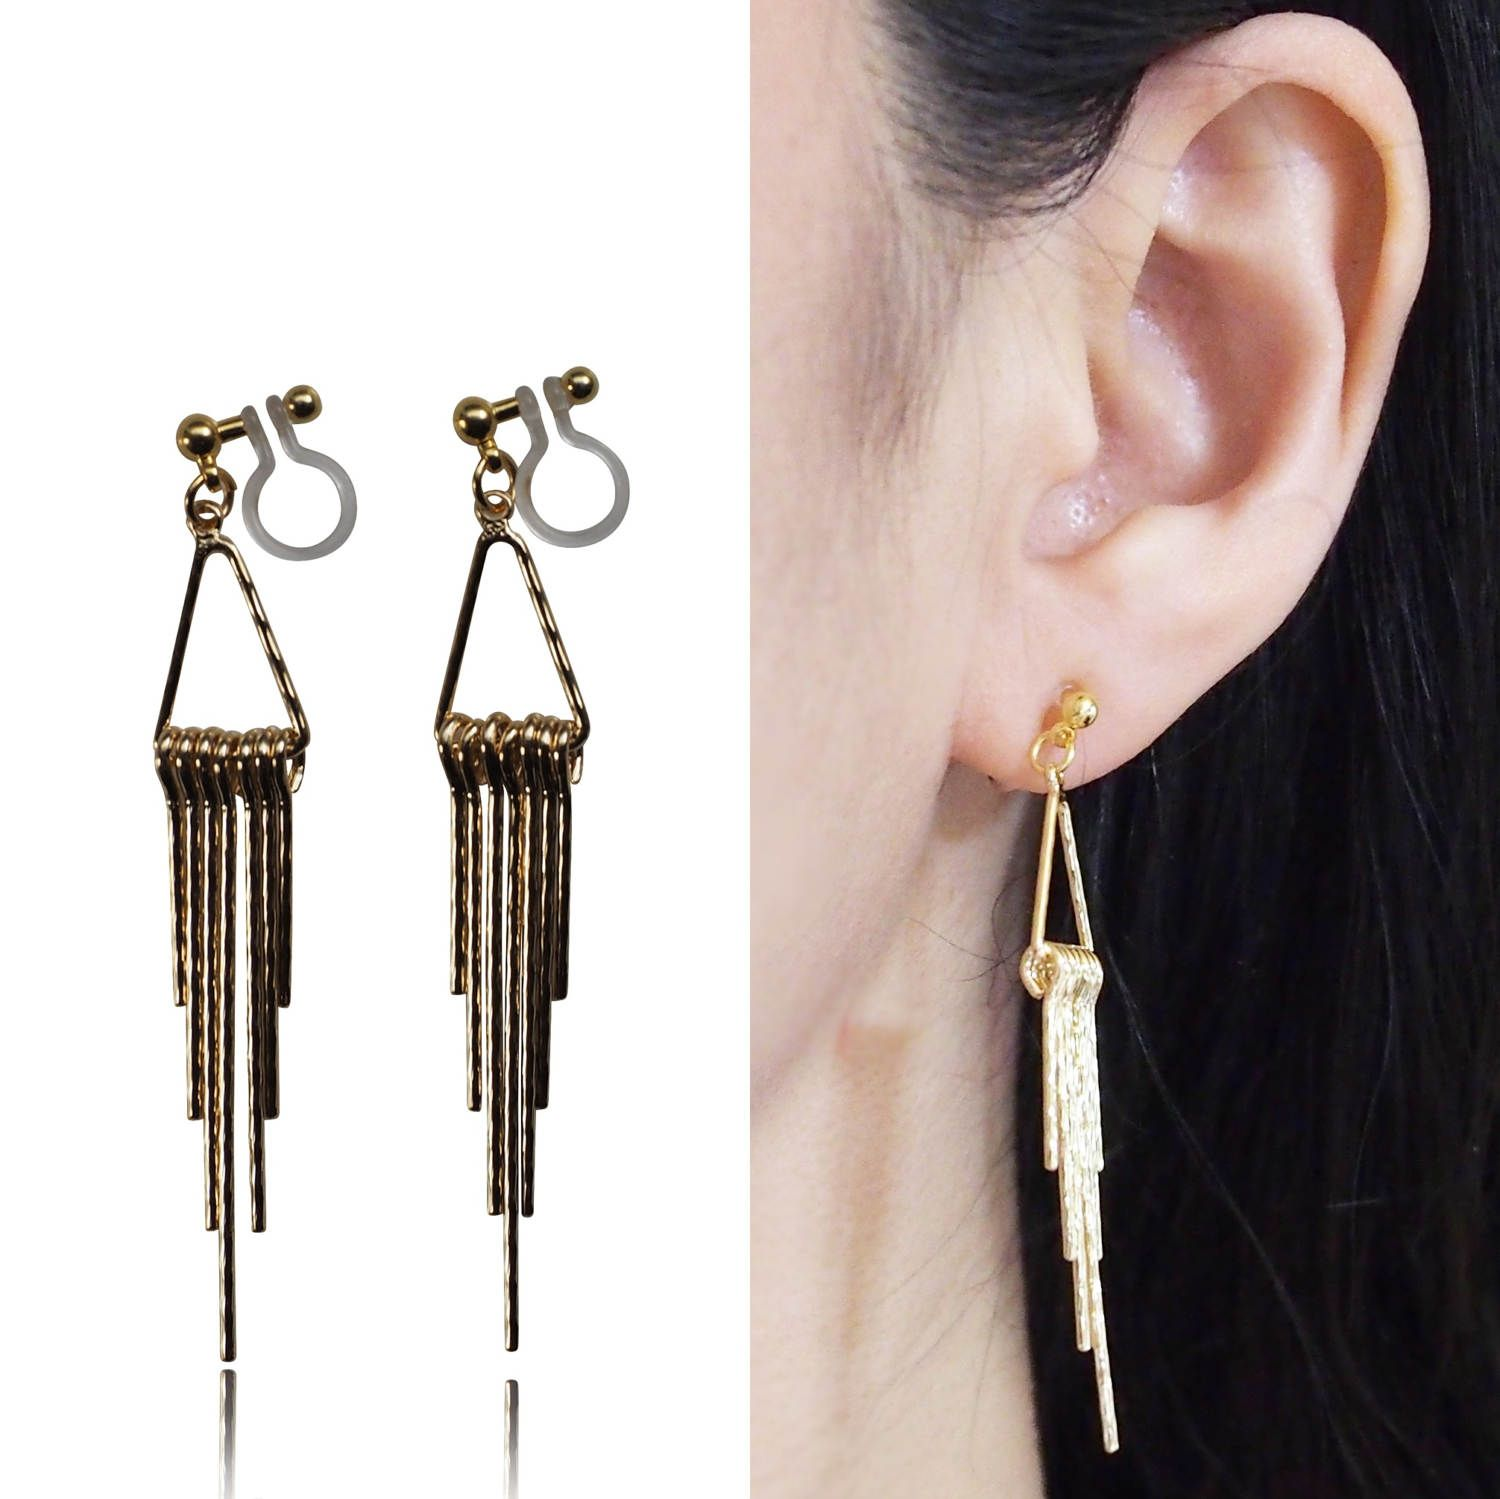 Gold Fringe Invisible Clip On Earrings Dangle Bar Boho Ons Non Pierced Long Gift For Her By Miyarace Etsy